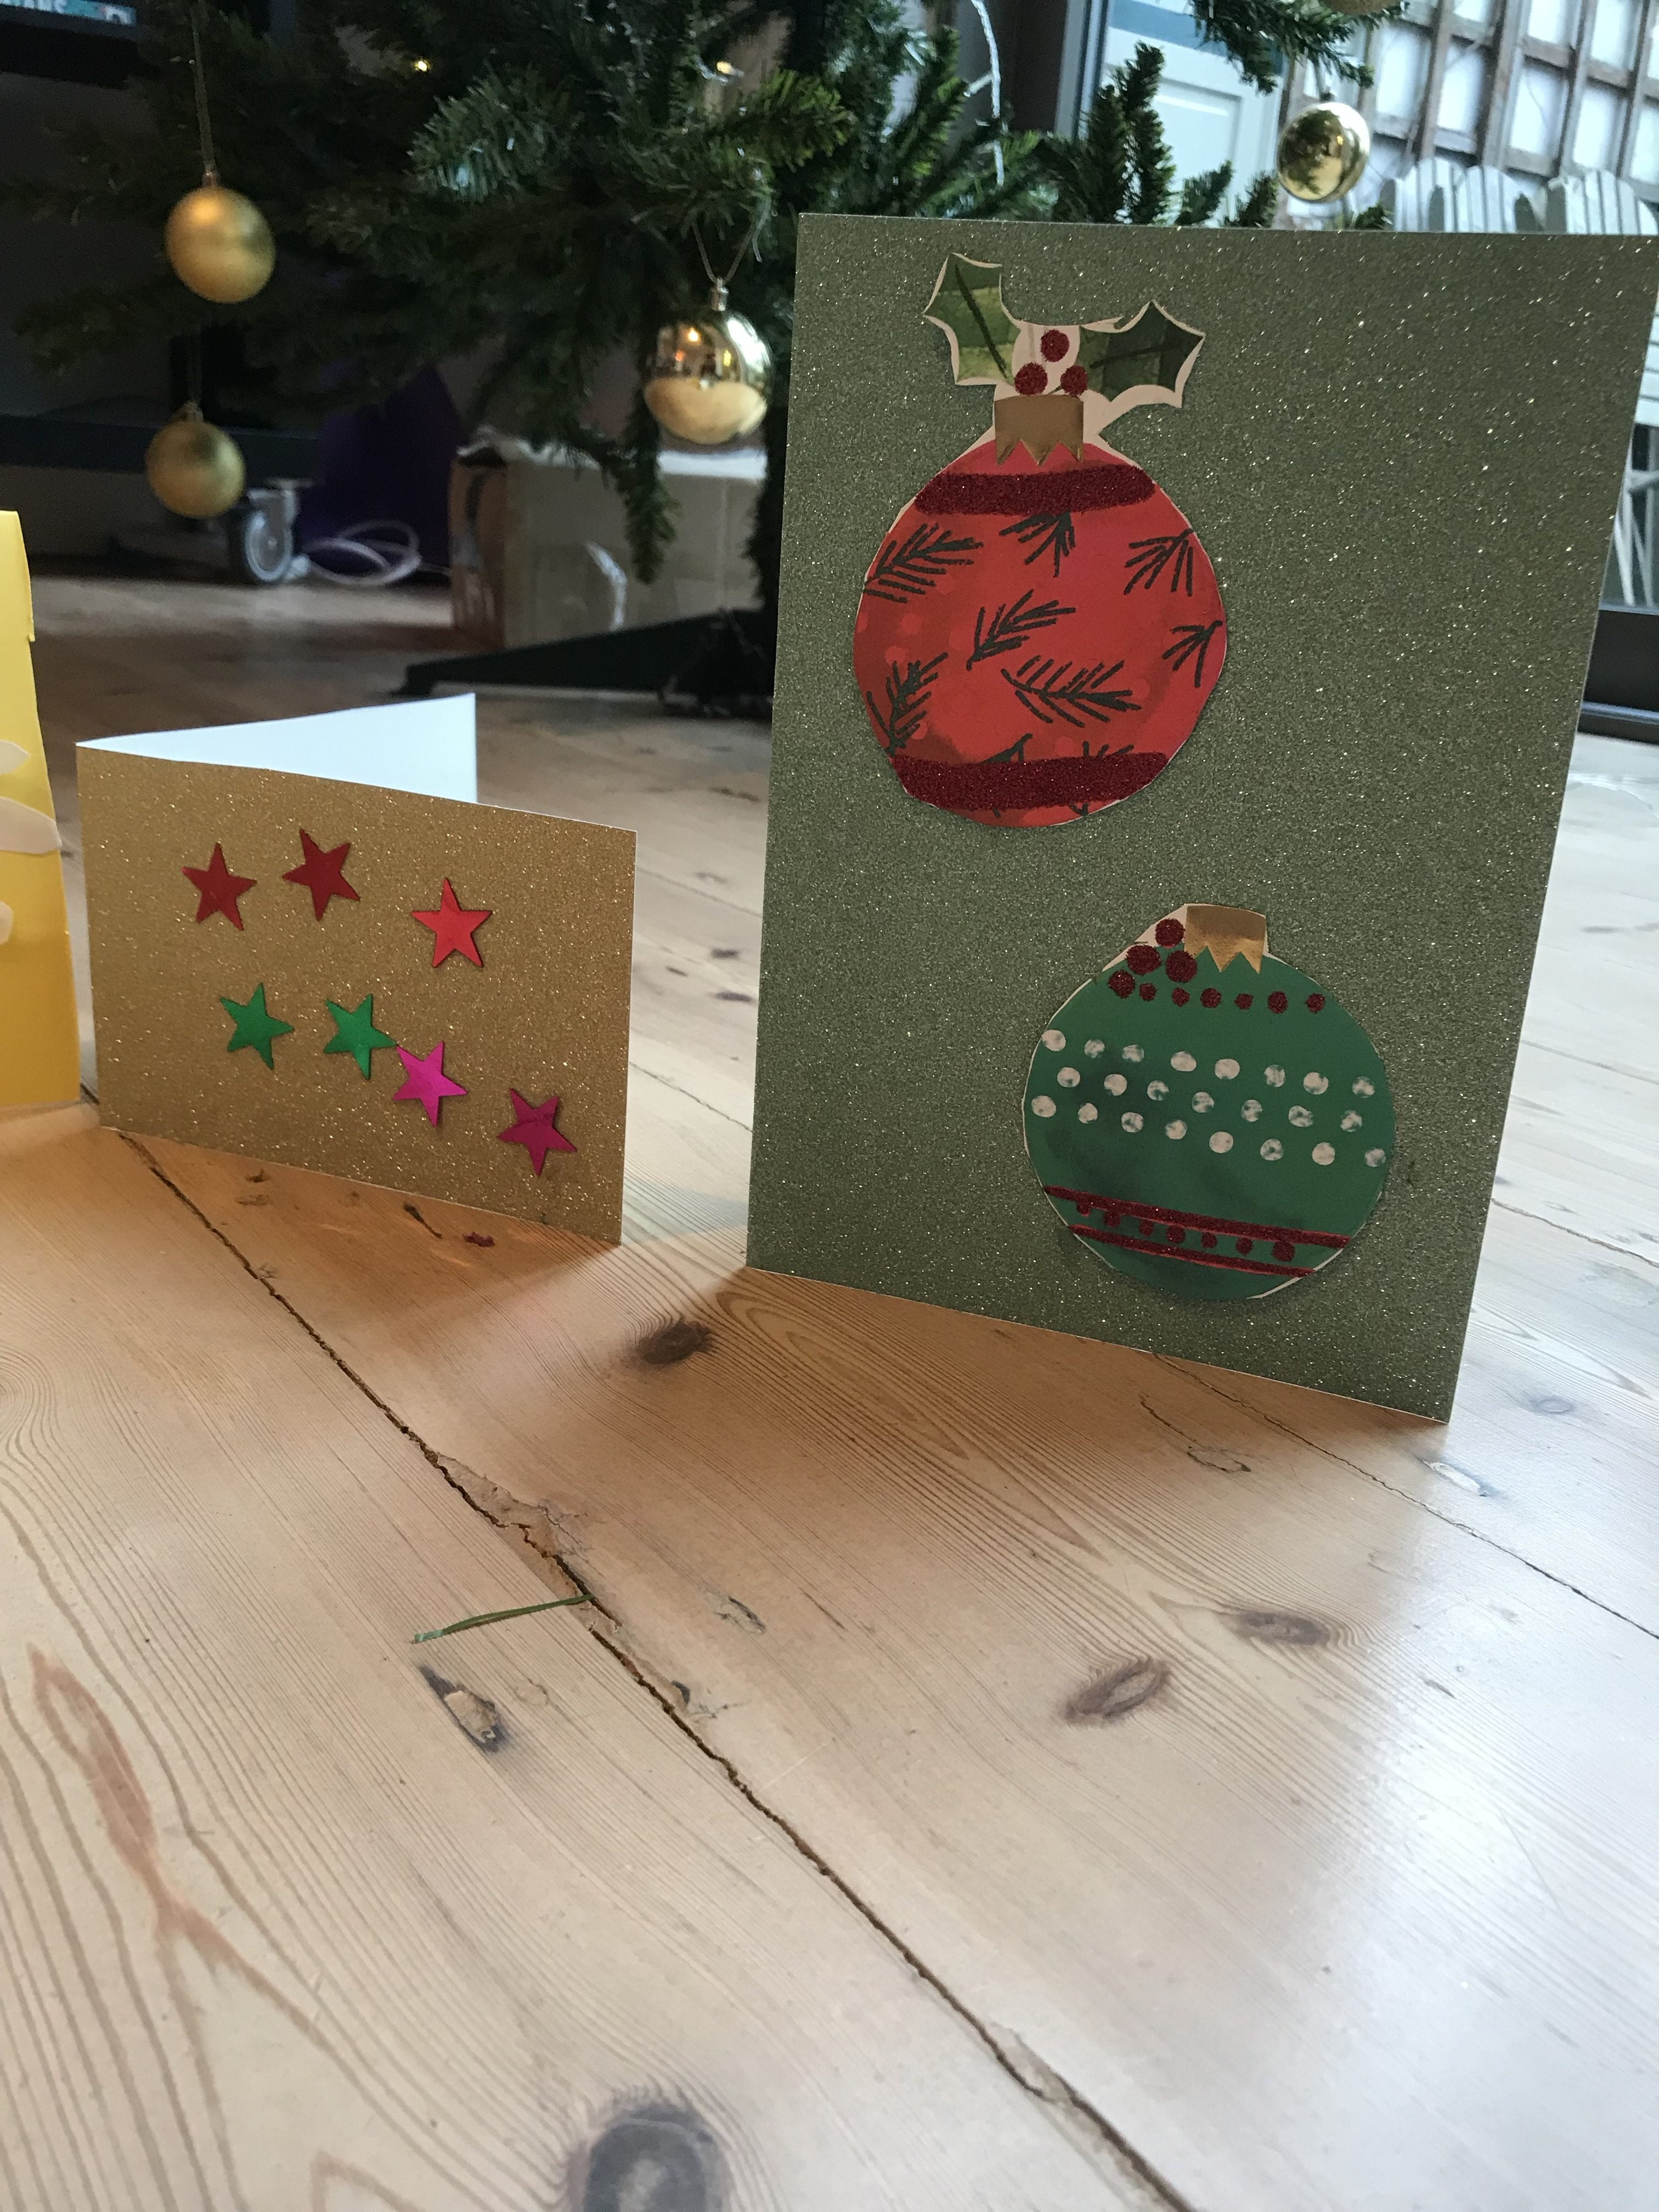 Homemade Christmas cards, craft activities with toddlers with Nurture Collective Ethical Baby Clothing